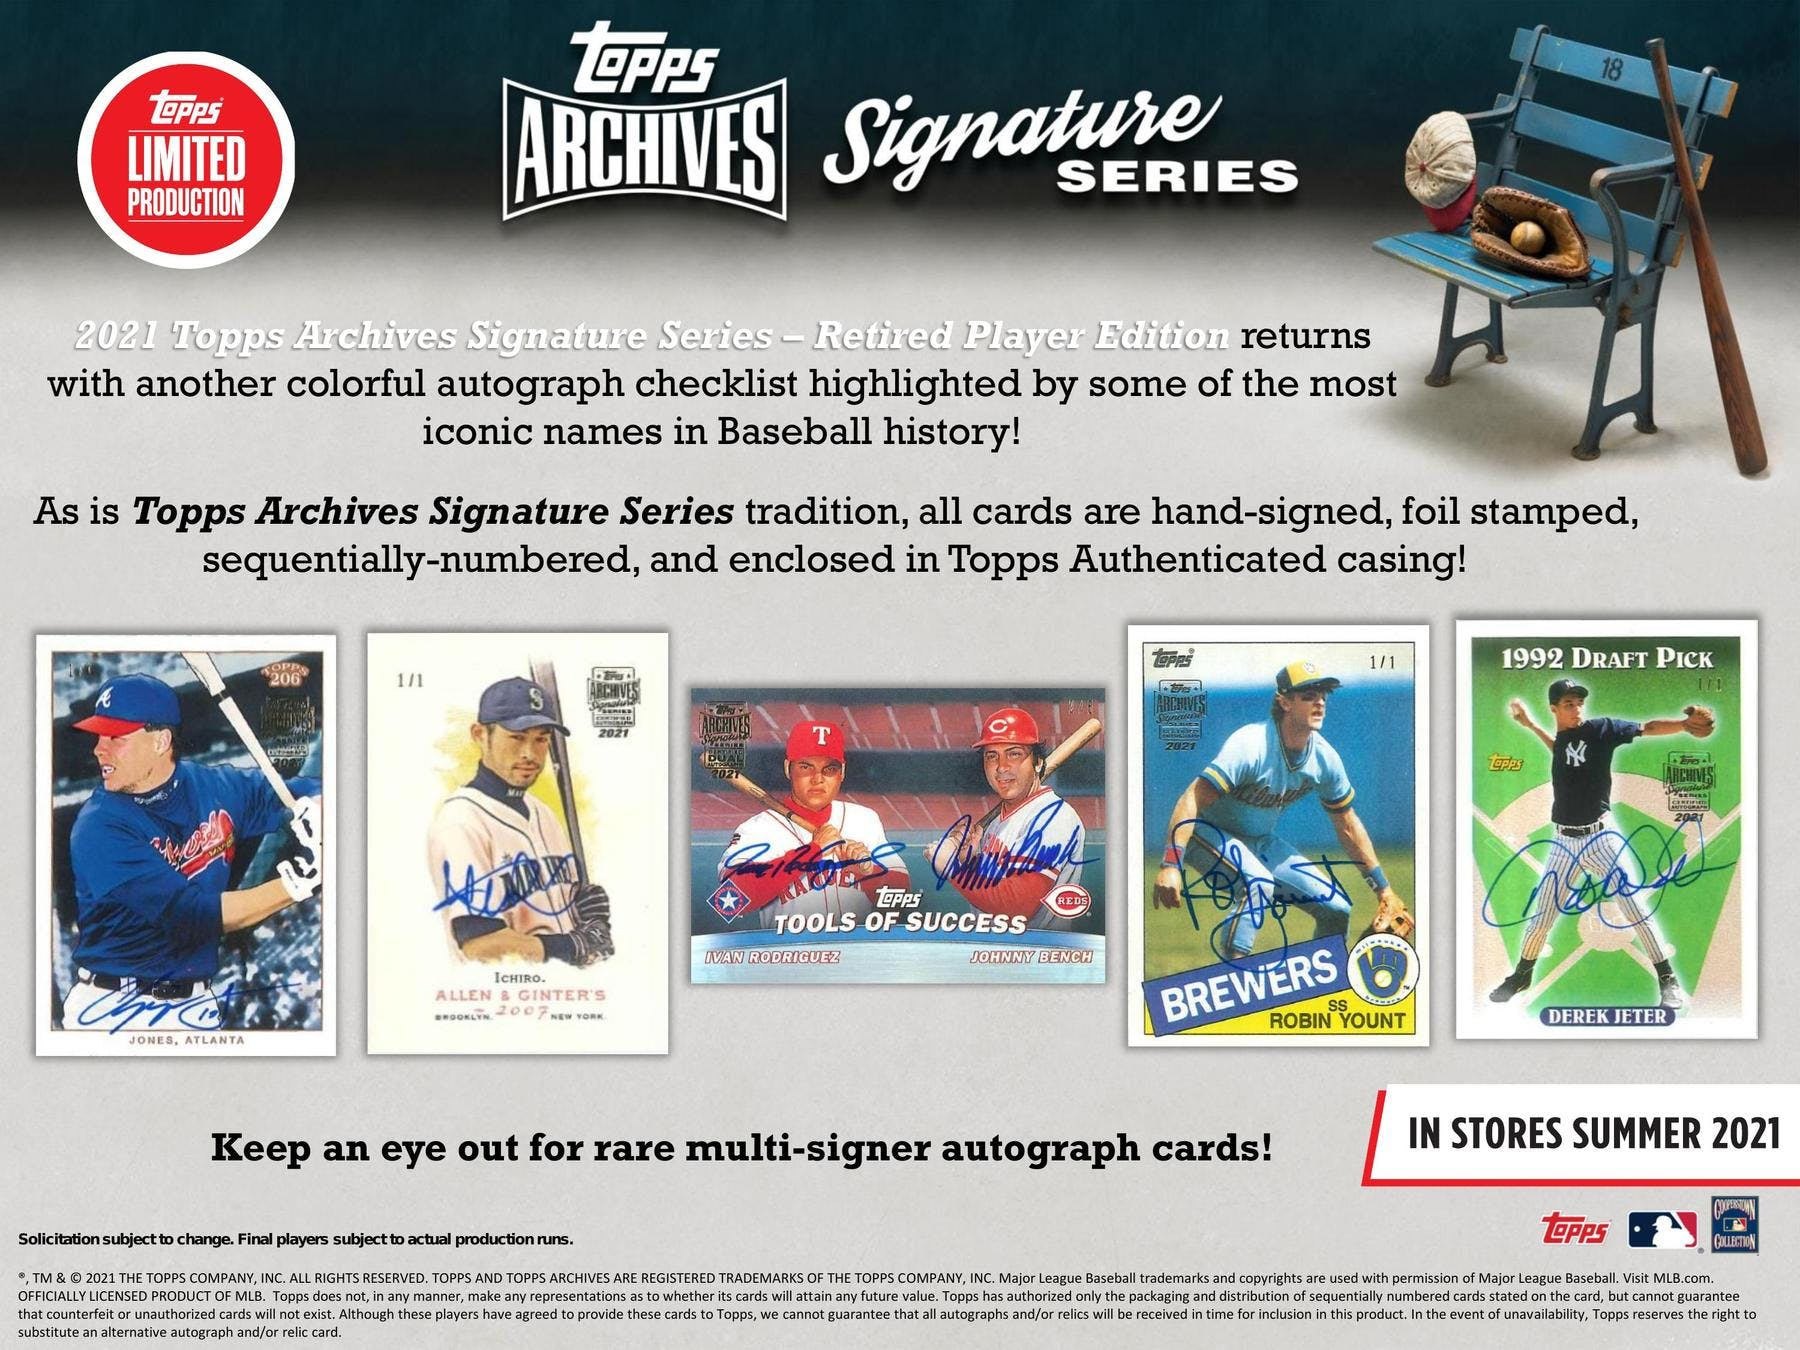 2021 BASEBALL -  TOPPS ARCHIVES SIGNATURE SERIES RETIRED PLAYER EDITION - HOBBY BOX